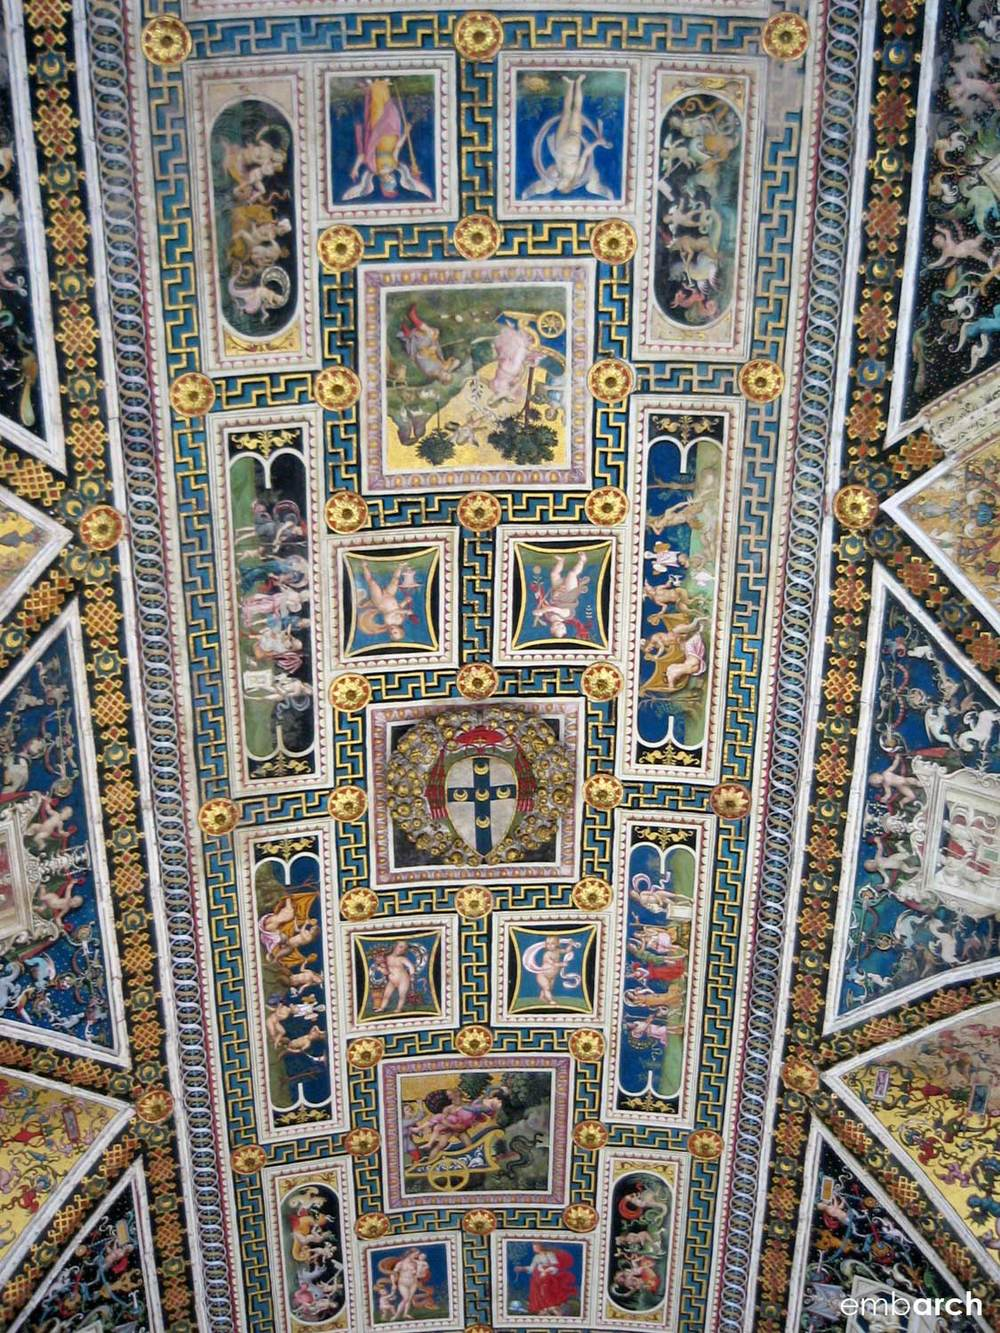 Siena Cathedral - interior view of the ceiling